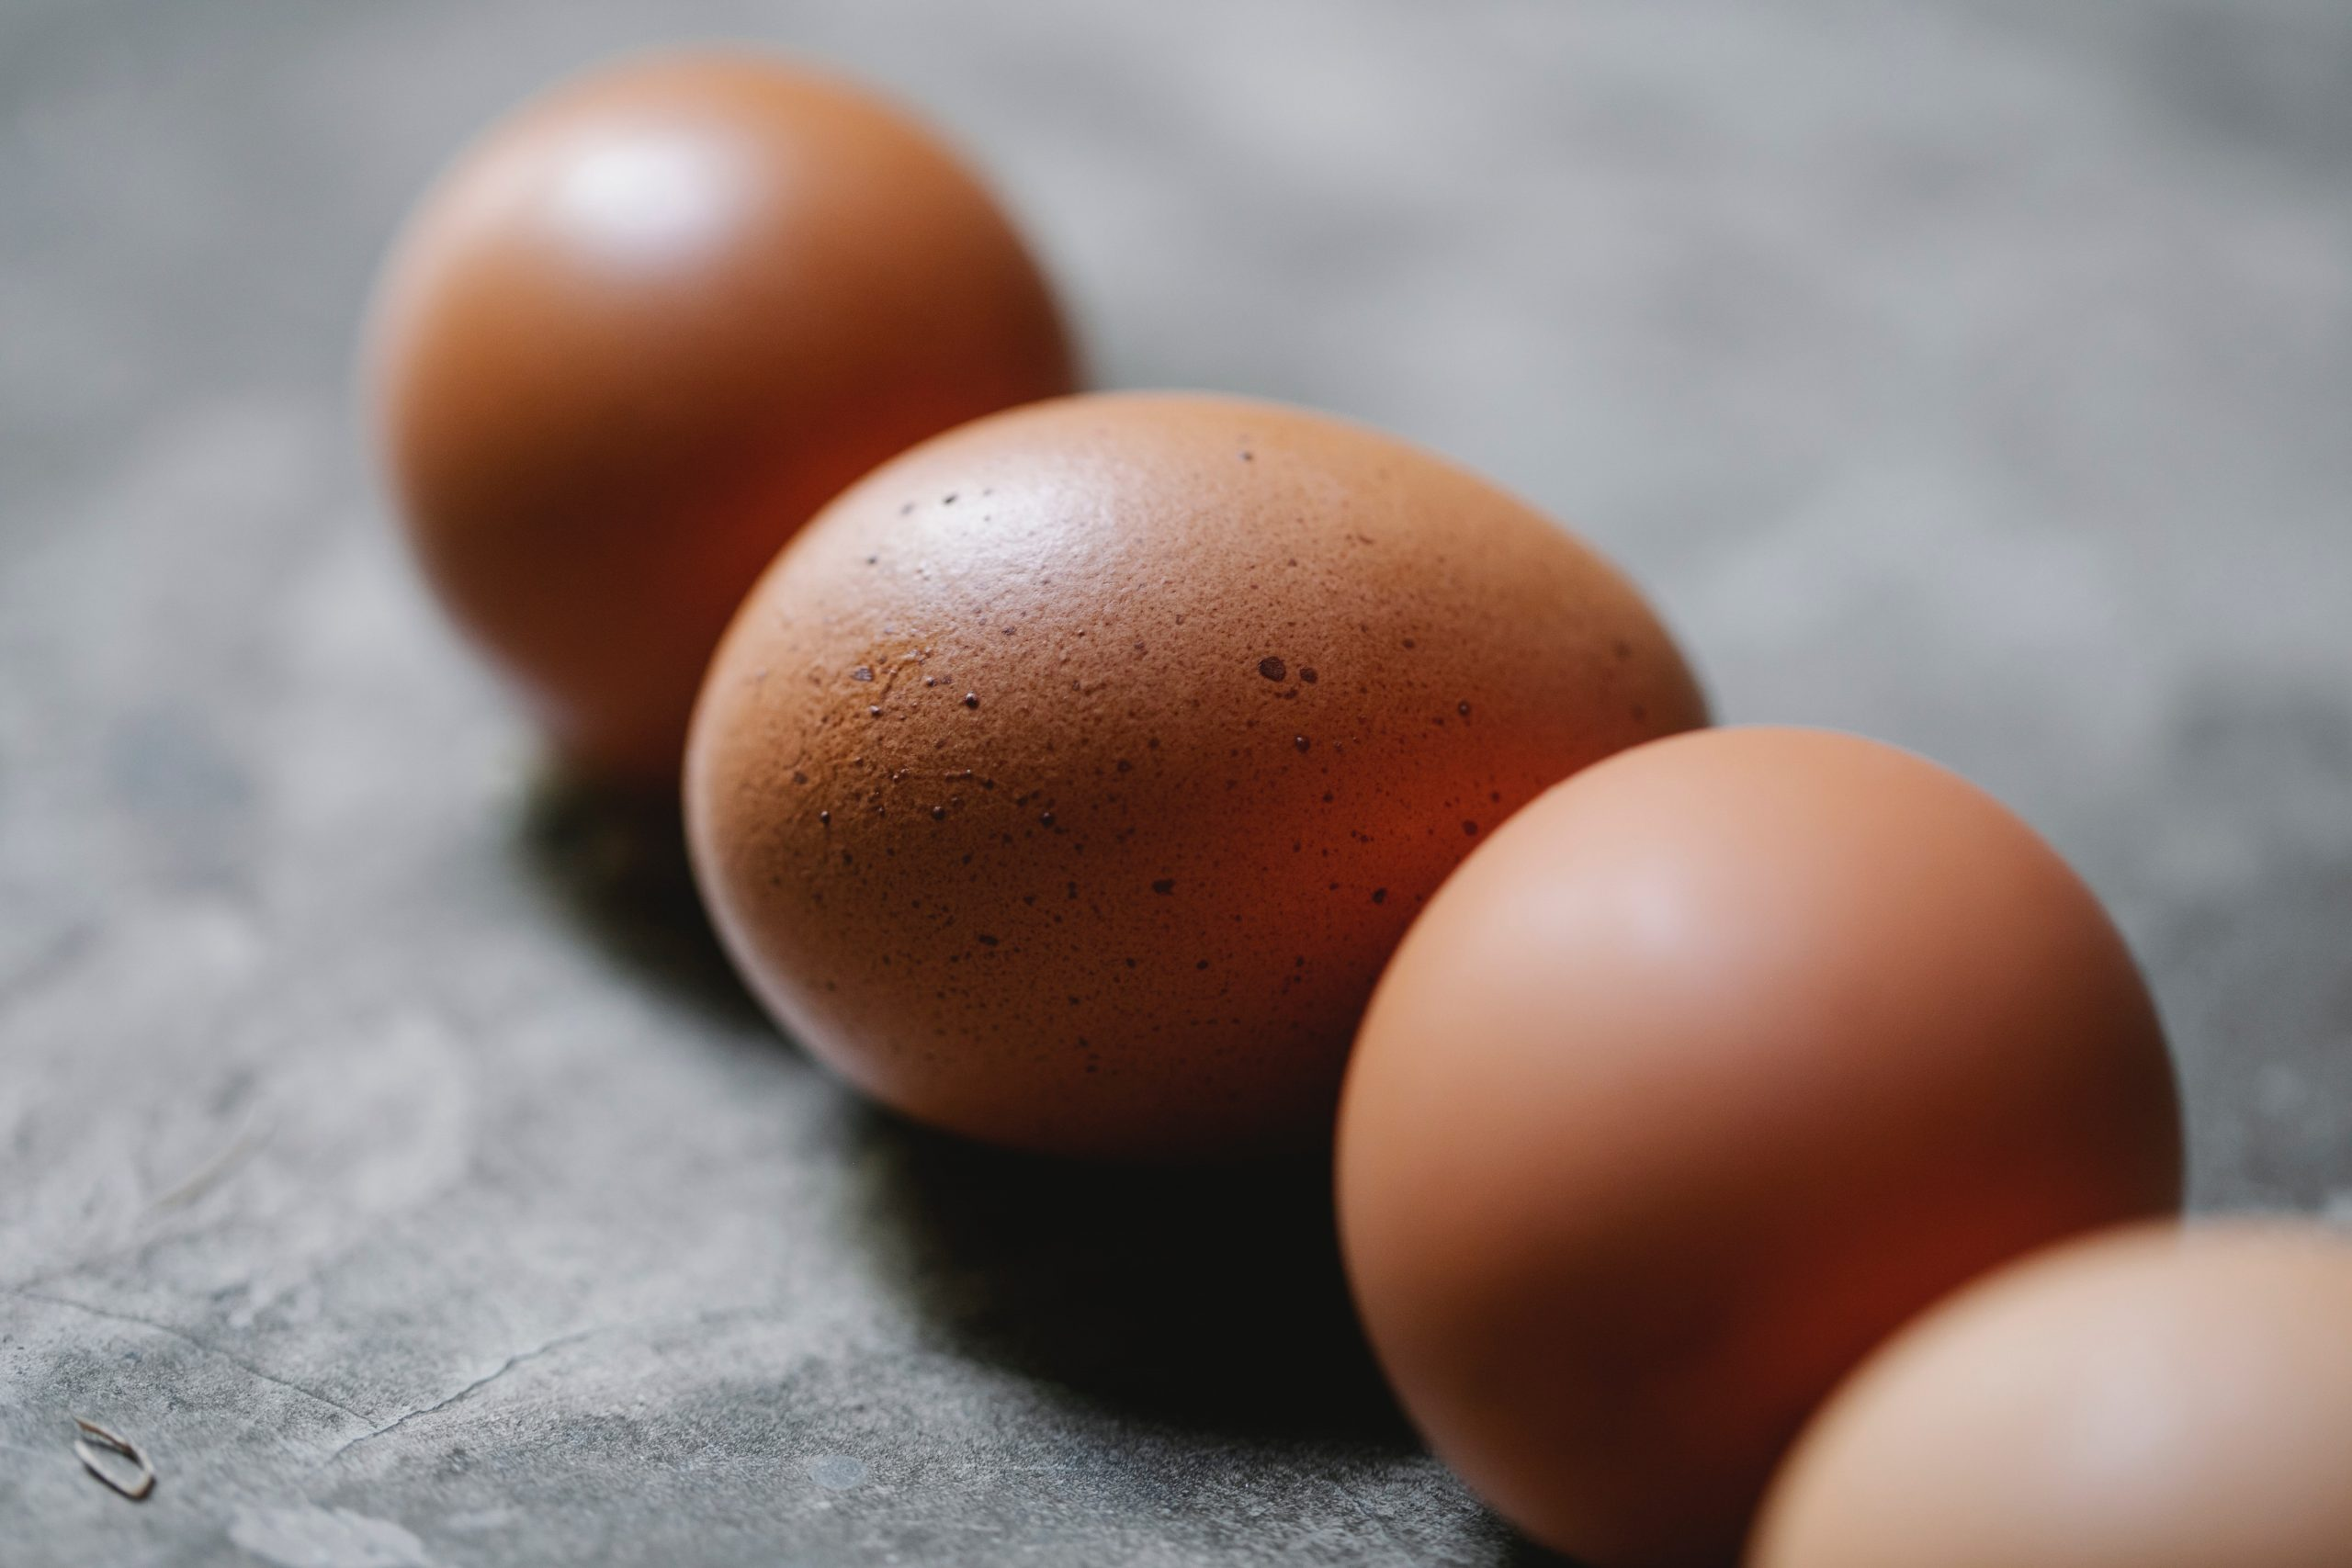 Why brown egg?